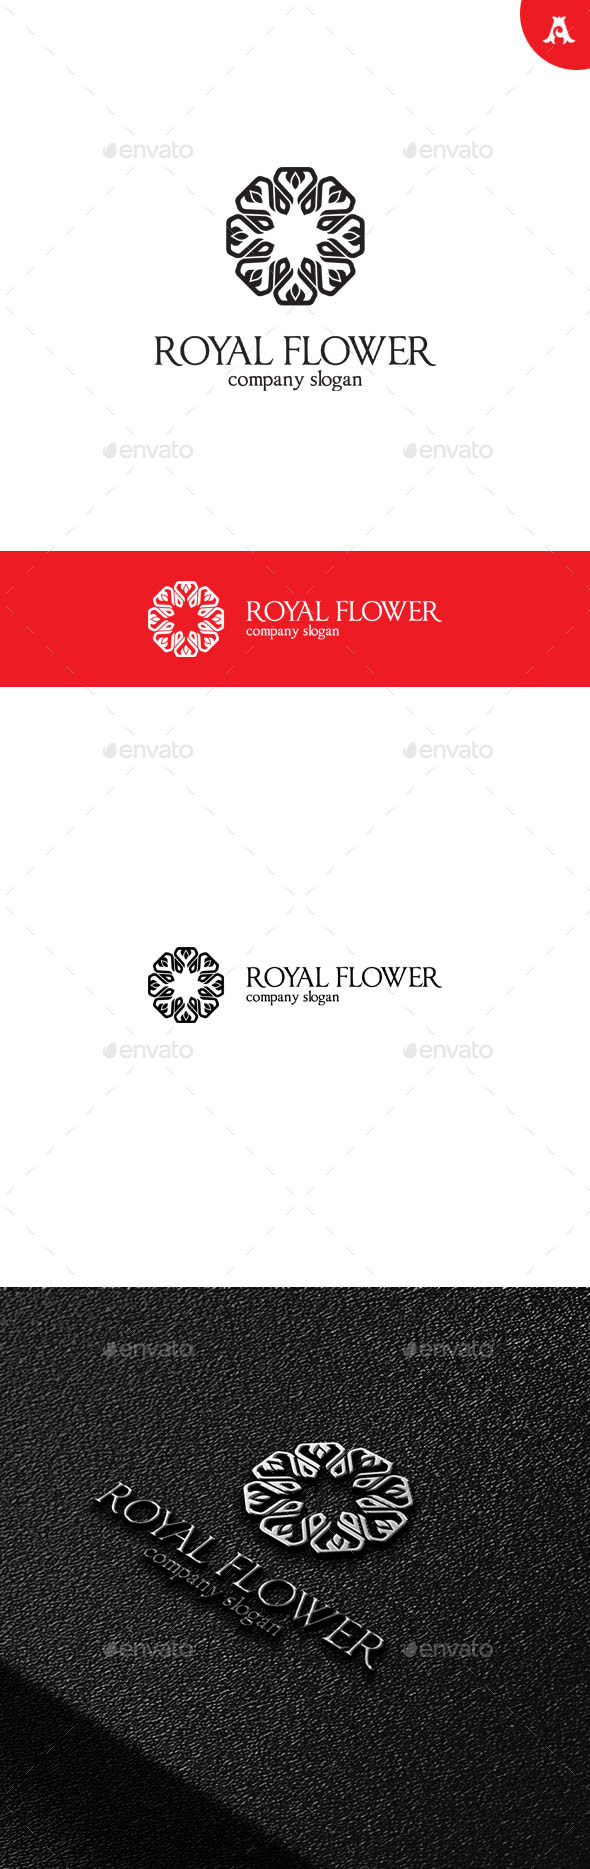 GraphicRiver Royal Flower V2 Logo 10007509